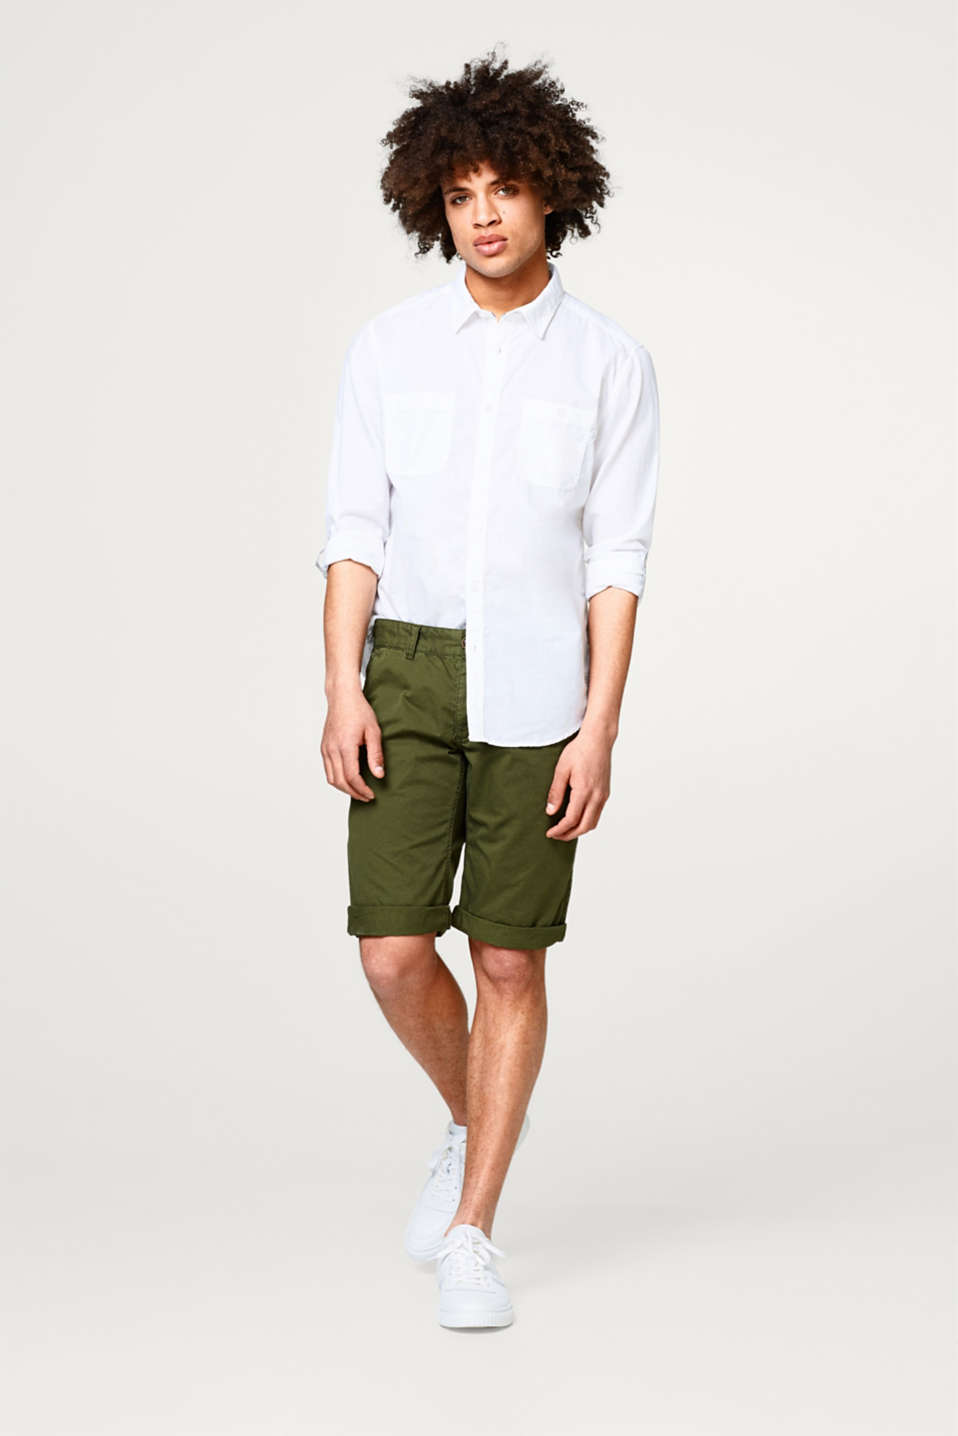 Shirt with linen and turn-up sleeves